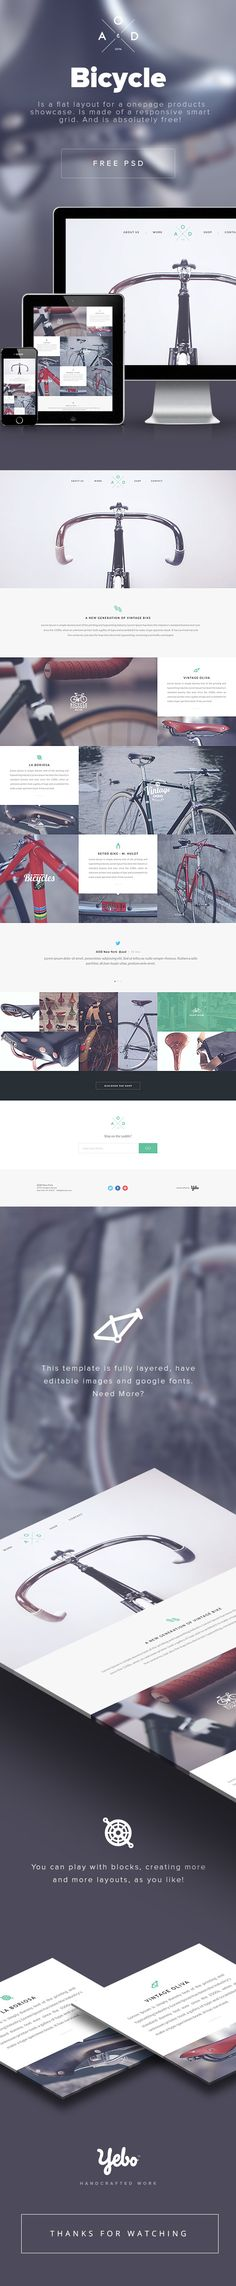 Bicycle Free PSD by Yebo ., via Behance